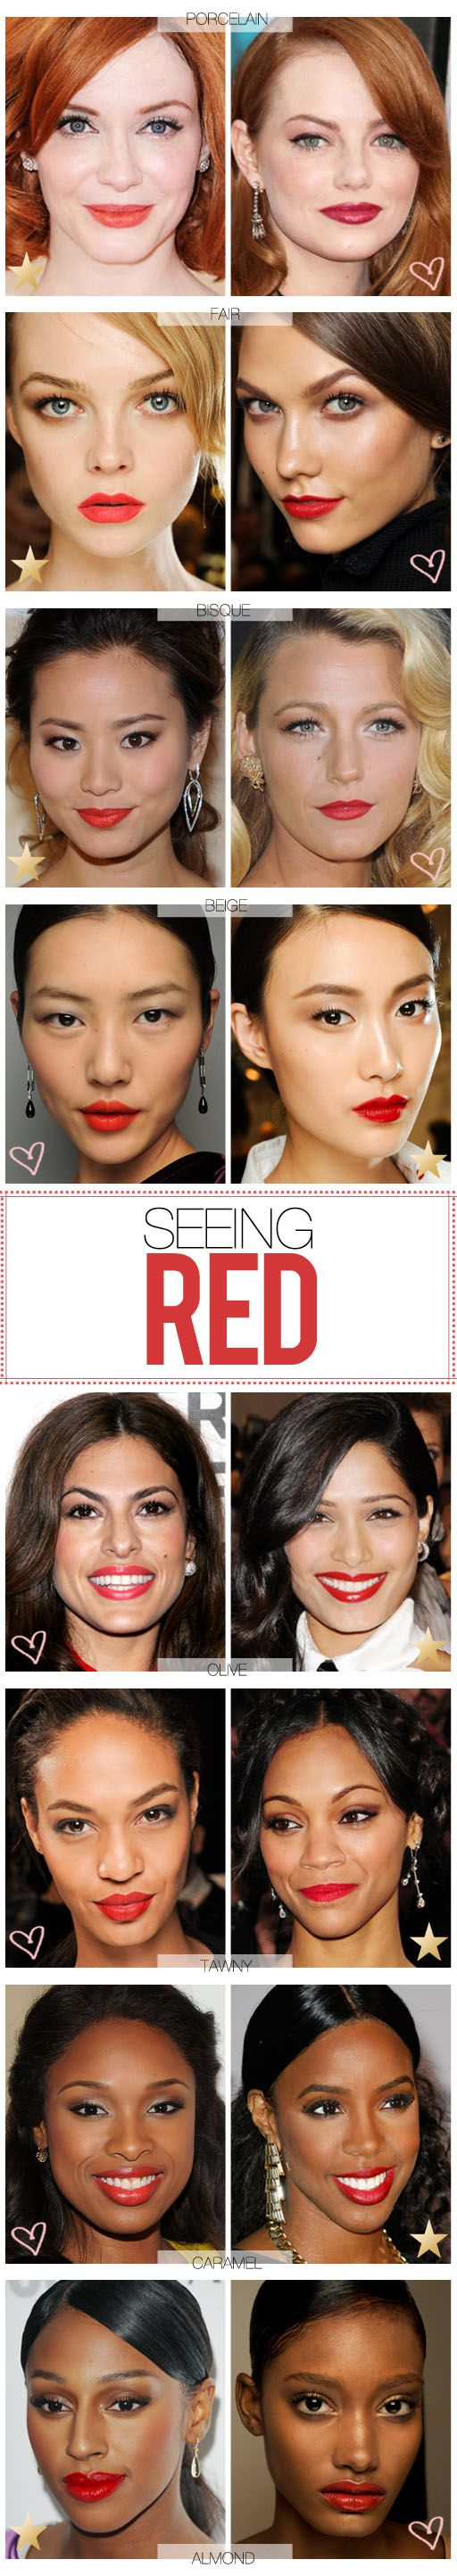 The Beauty Department shares the best red lip shades for your skin tone #beautywithbenefits